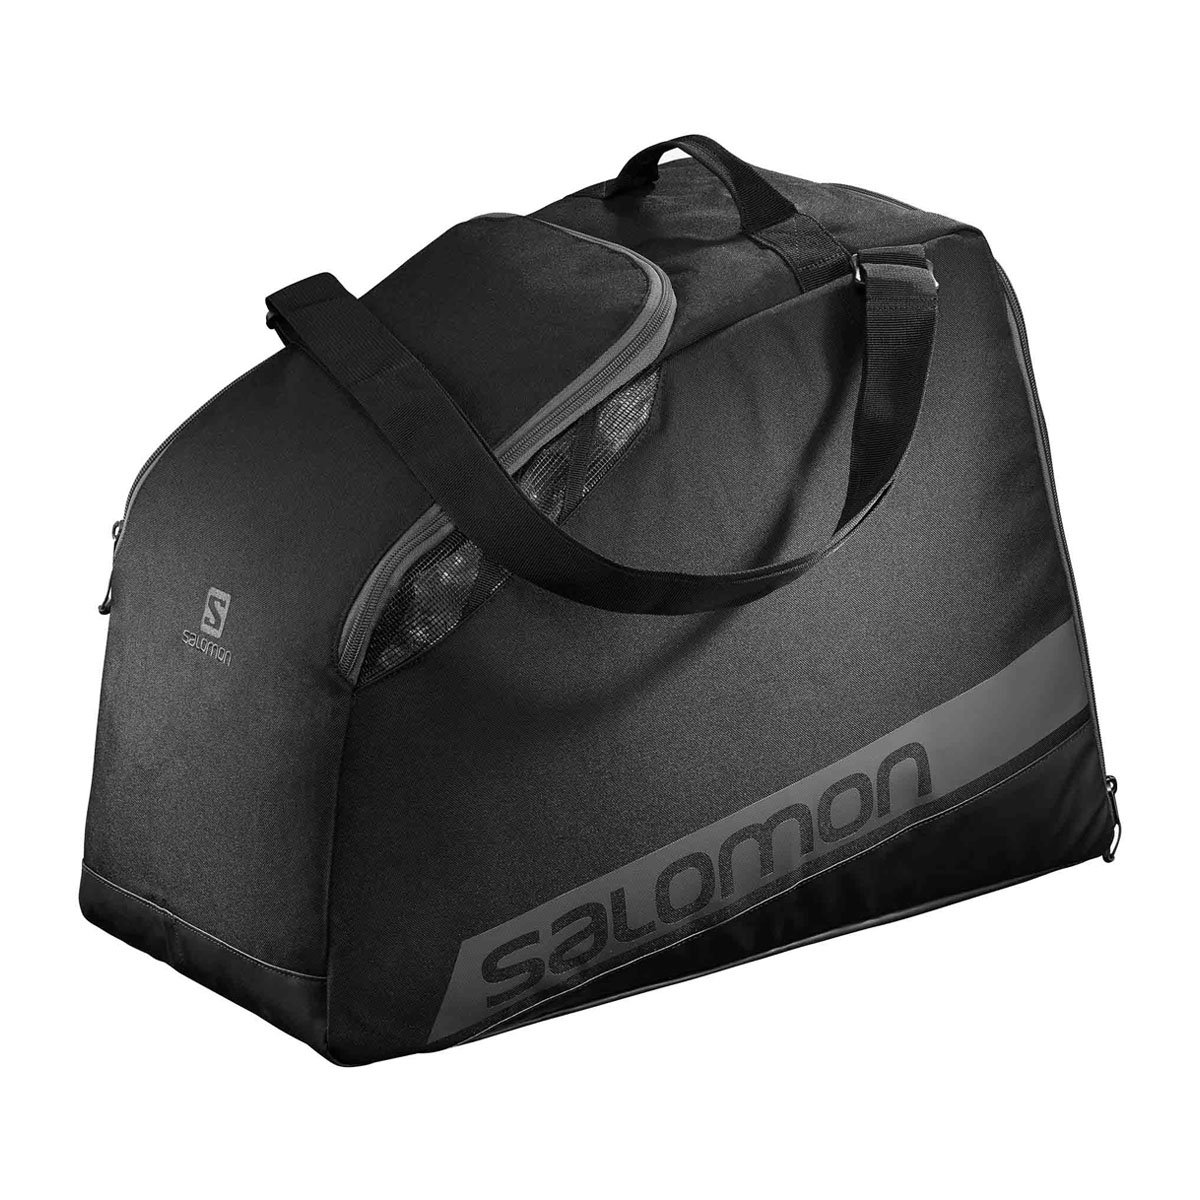 EXTEND MAX GEARBAG